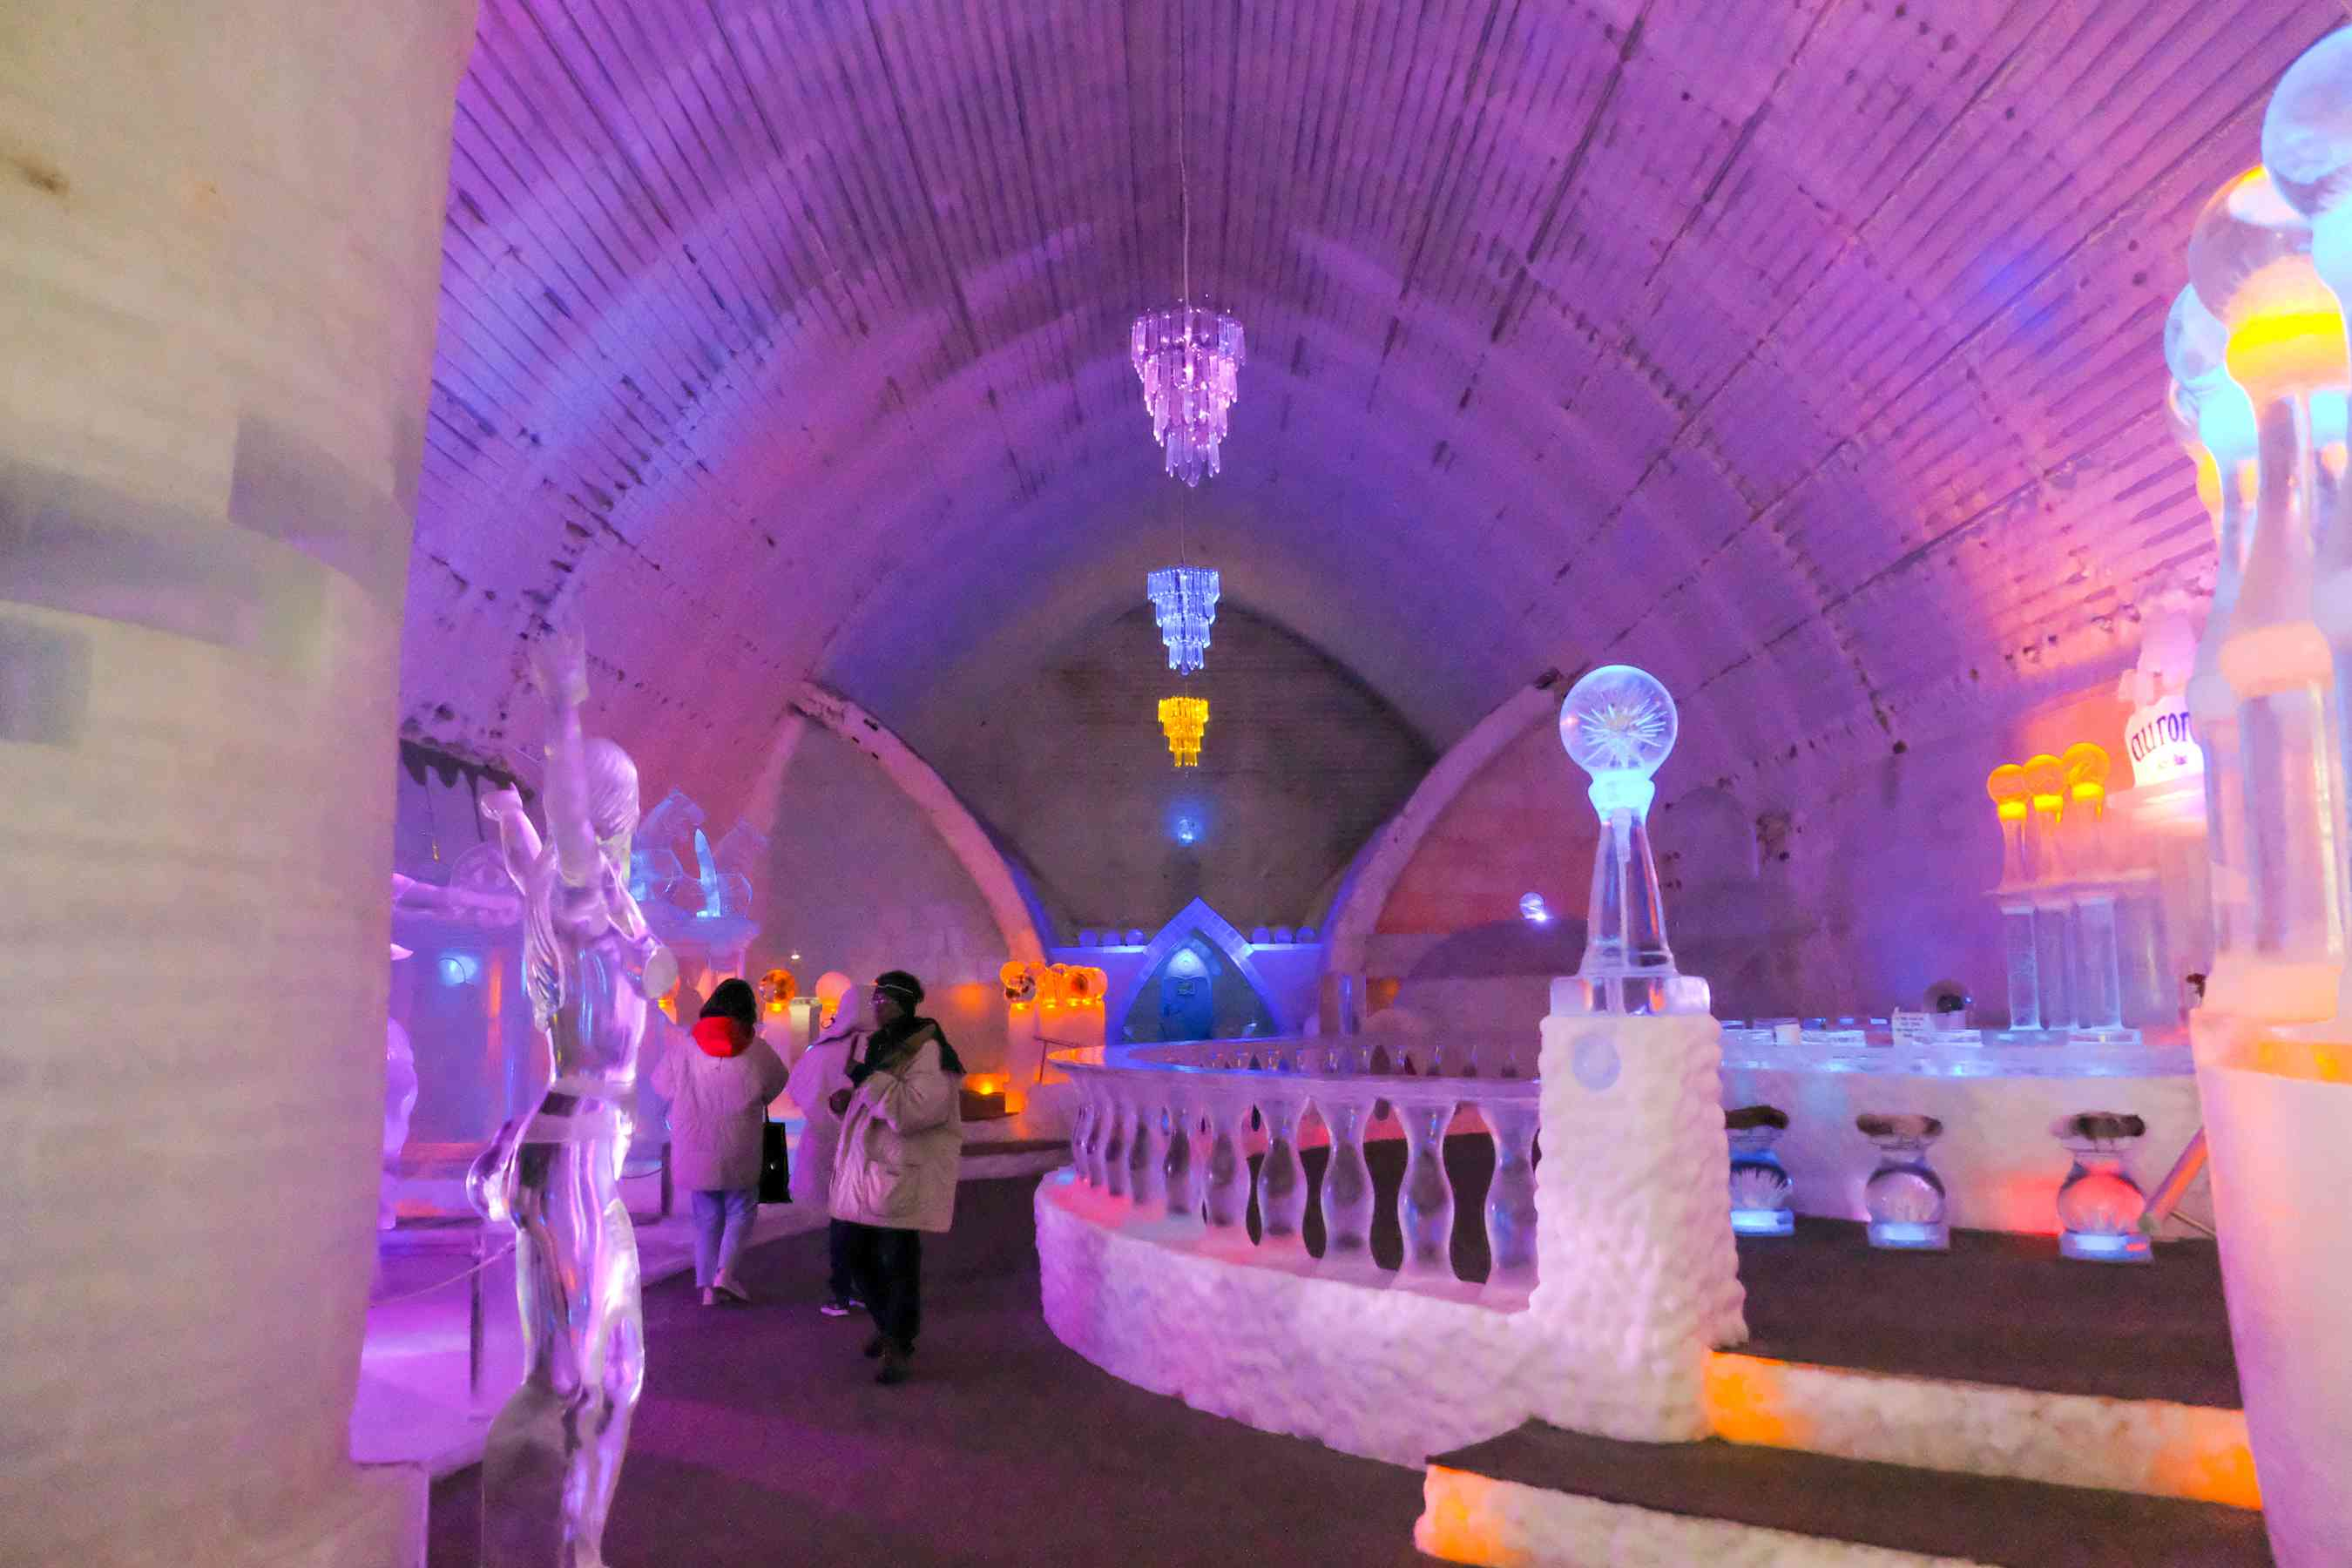 Giant ice sculptures inside the Ice Museum